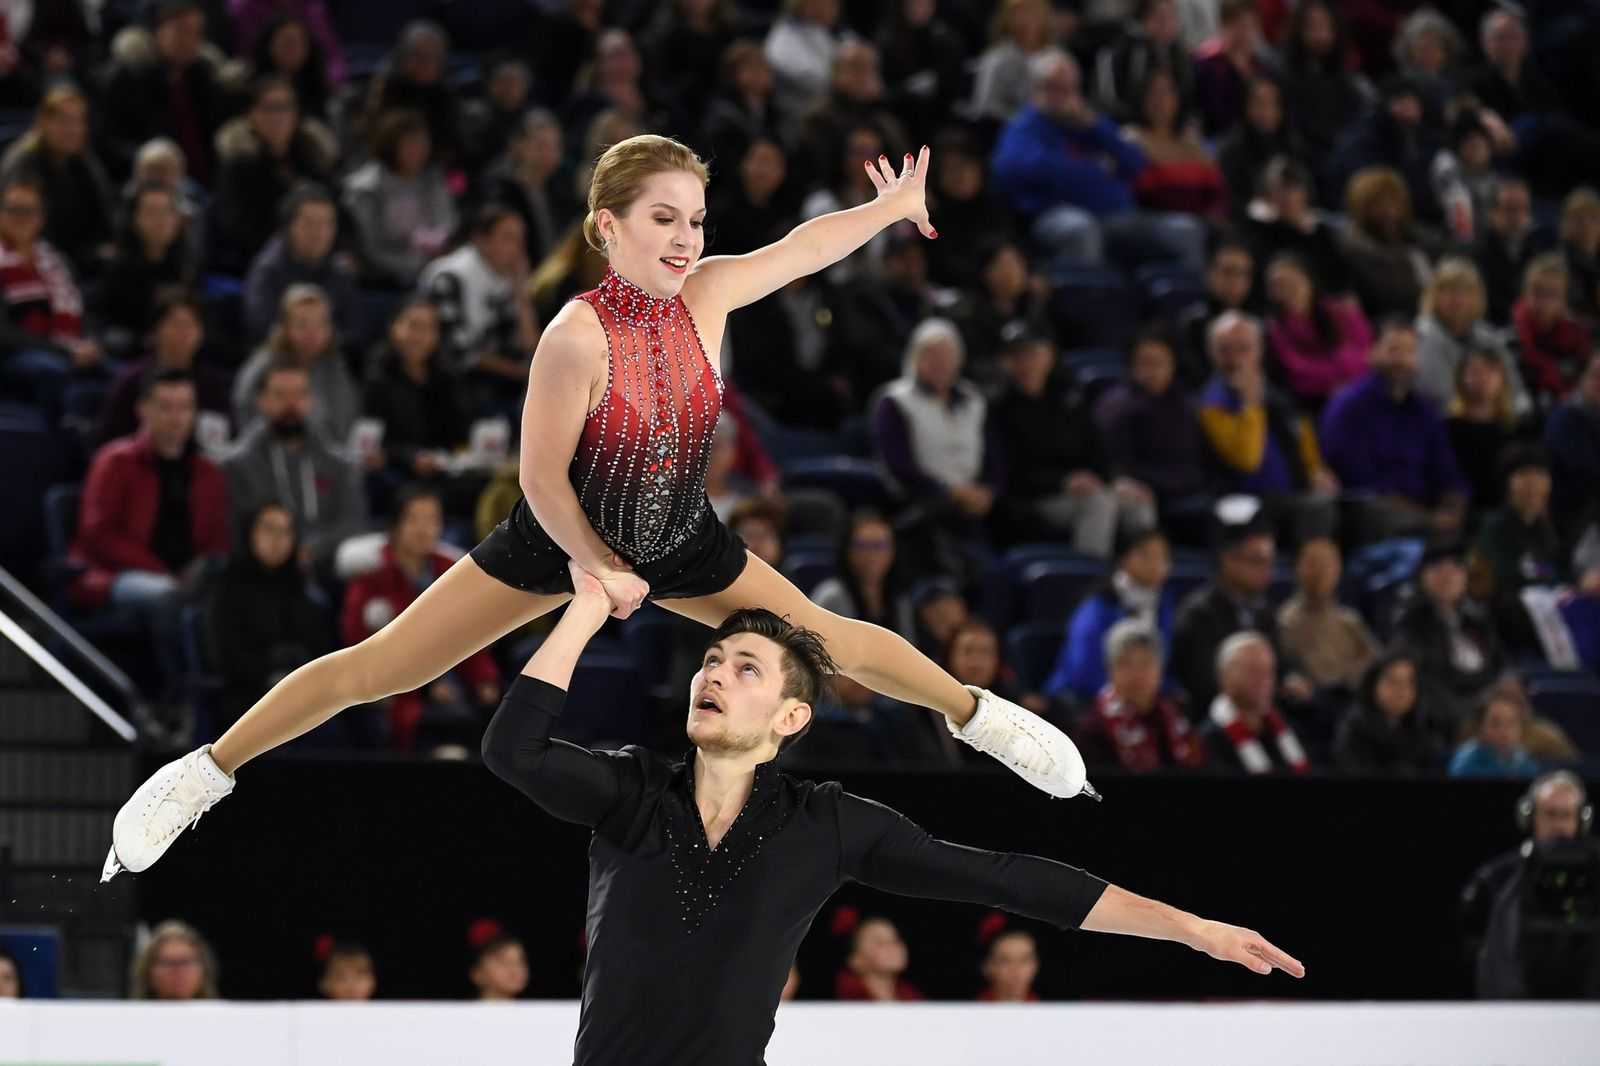 Ekaterina Alexandrovskaya and Harley Windsor of Australia compete during the ISU Grand Prix of Figure Skating Skate Canada International on October 27, 2018, in Laval, Quebec, Canada | Photo: Minas Panagiotakis - International Skating Union/Getty Images